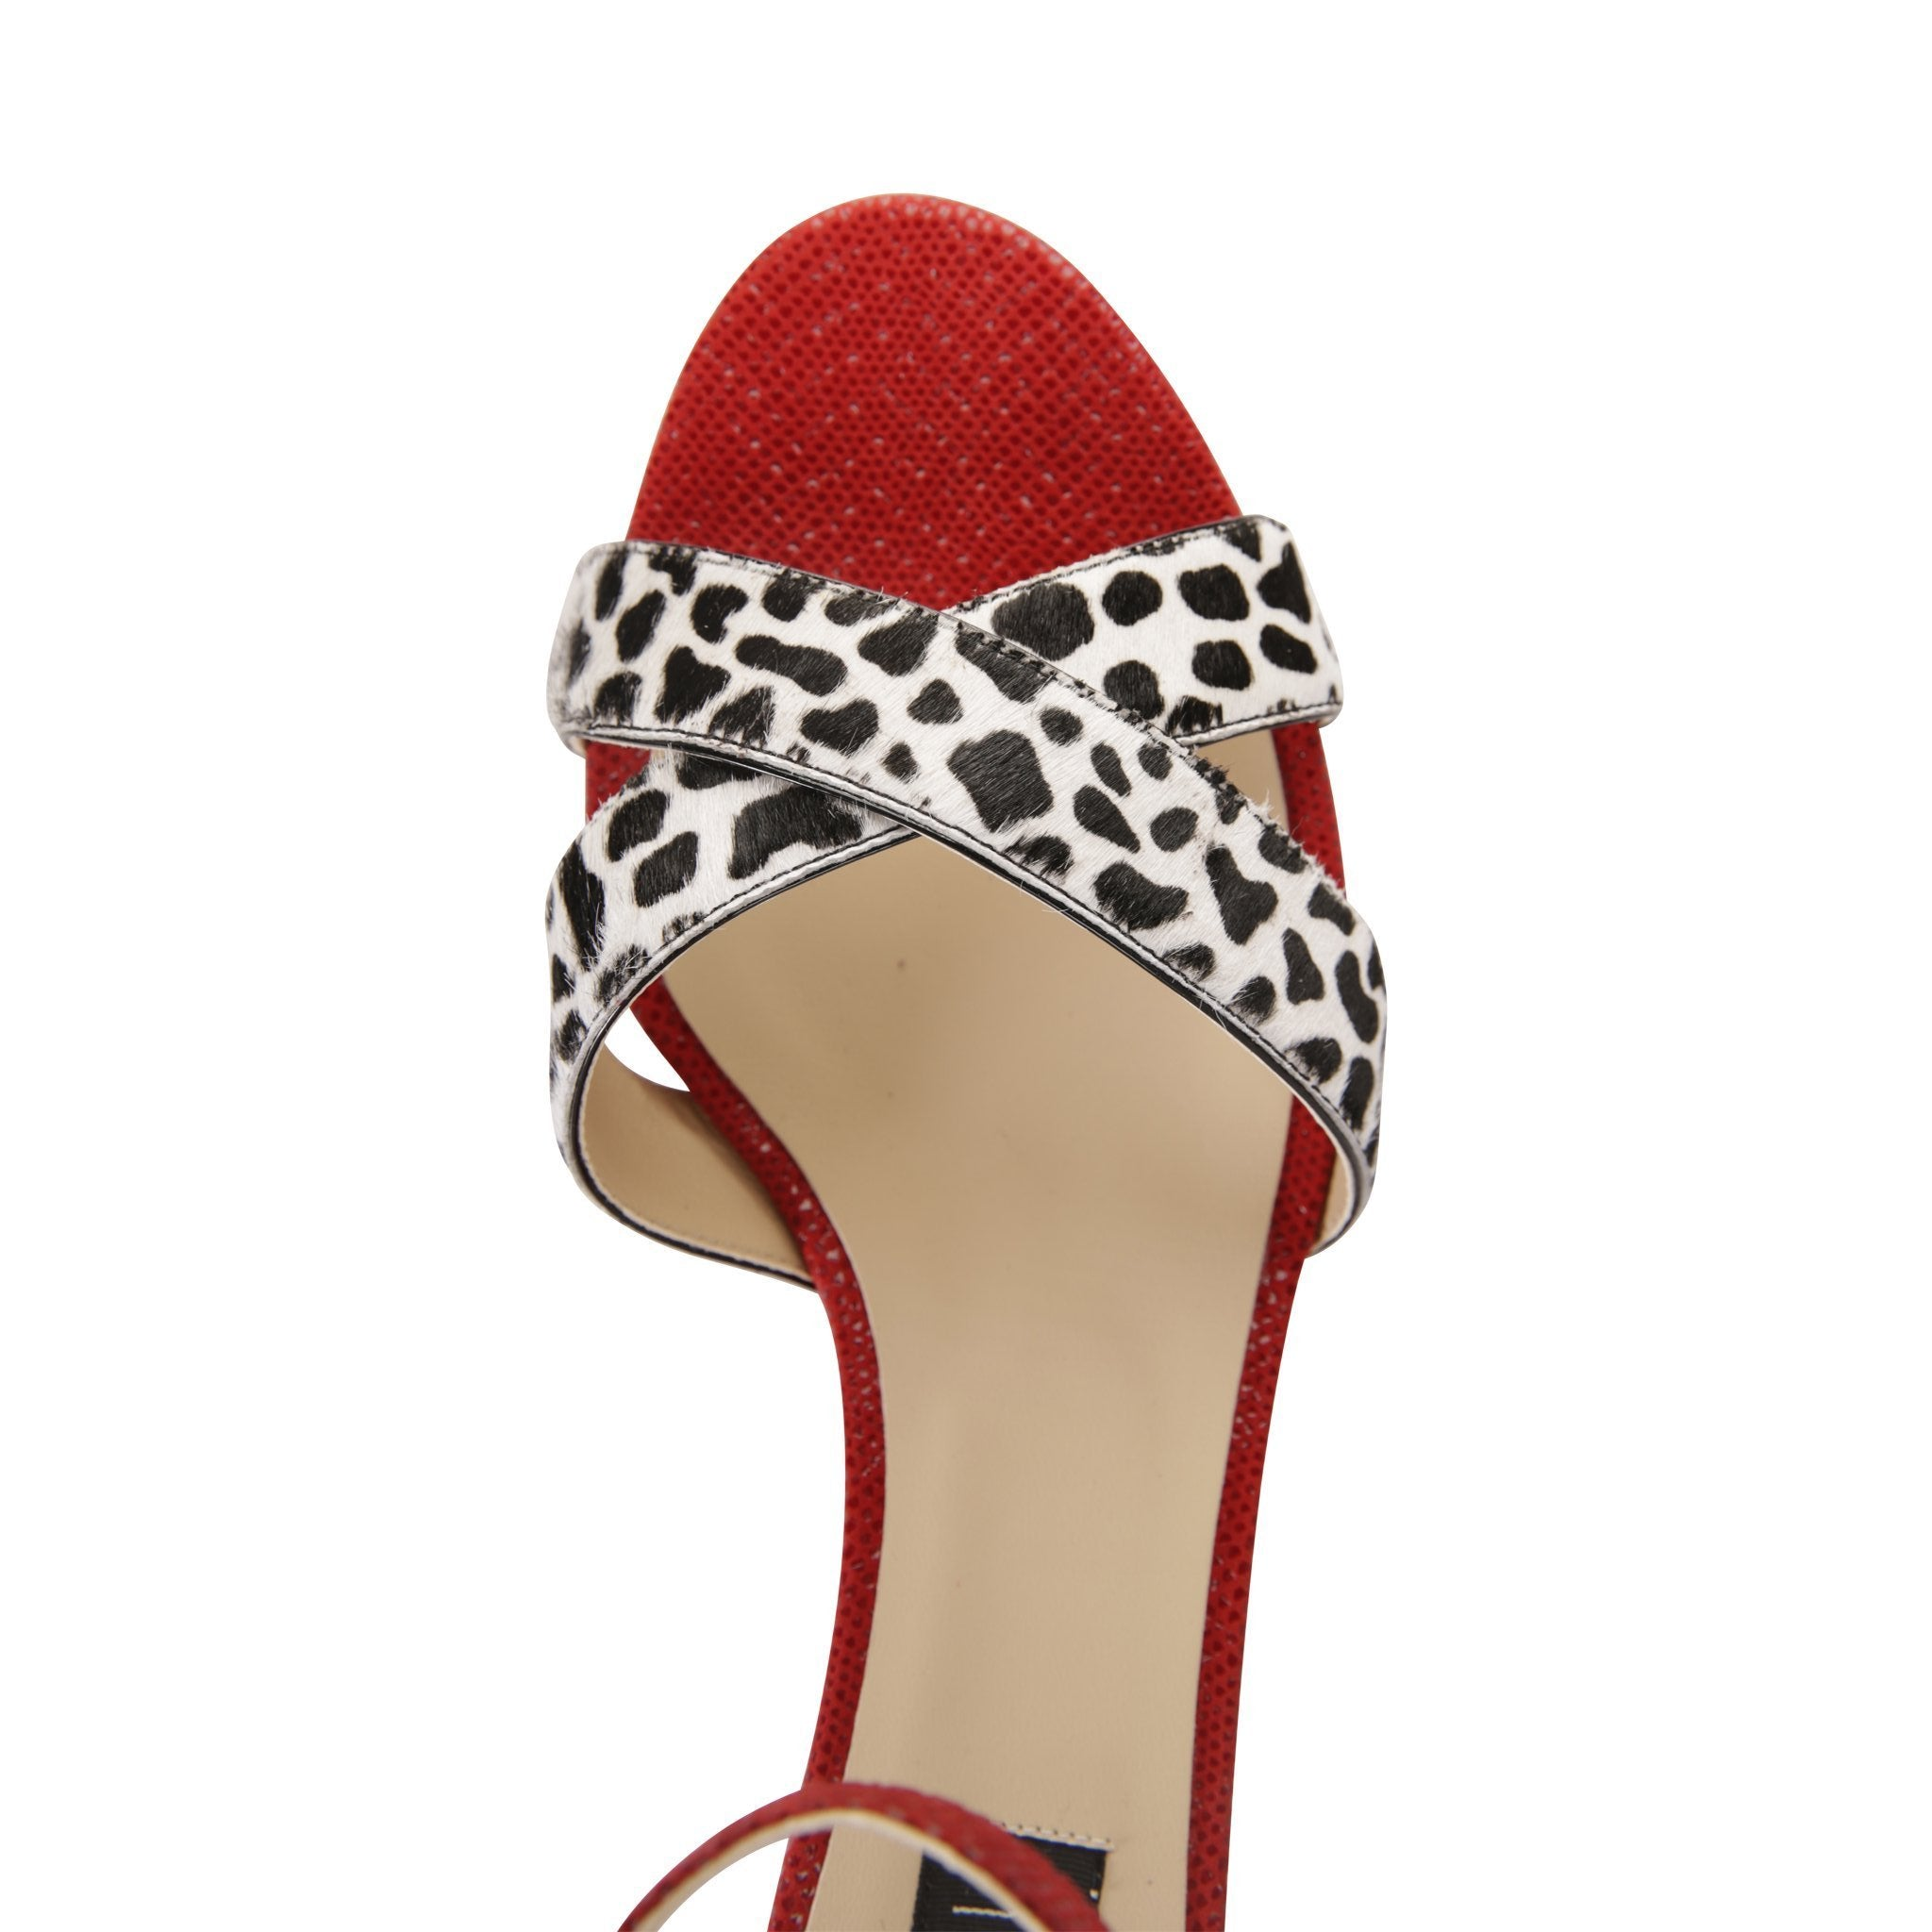 SORRENTO - Calf Hair Dalmation + Karung Rosso, VIAJIYU - Women's Hand Made Sustainable Luxury Shoes. Made in Italy. Made to Order.